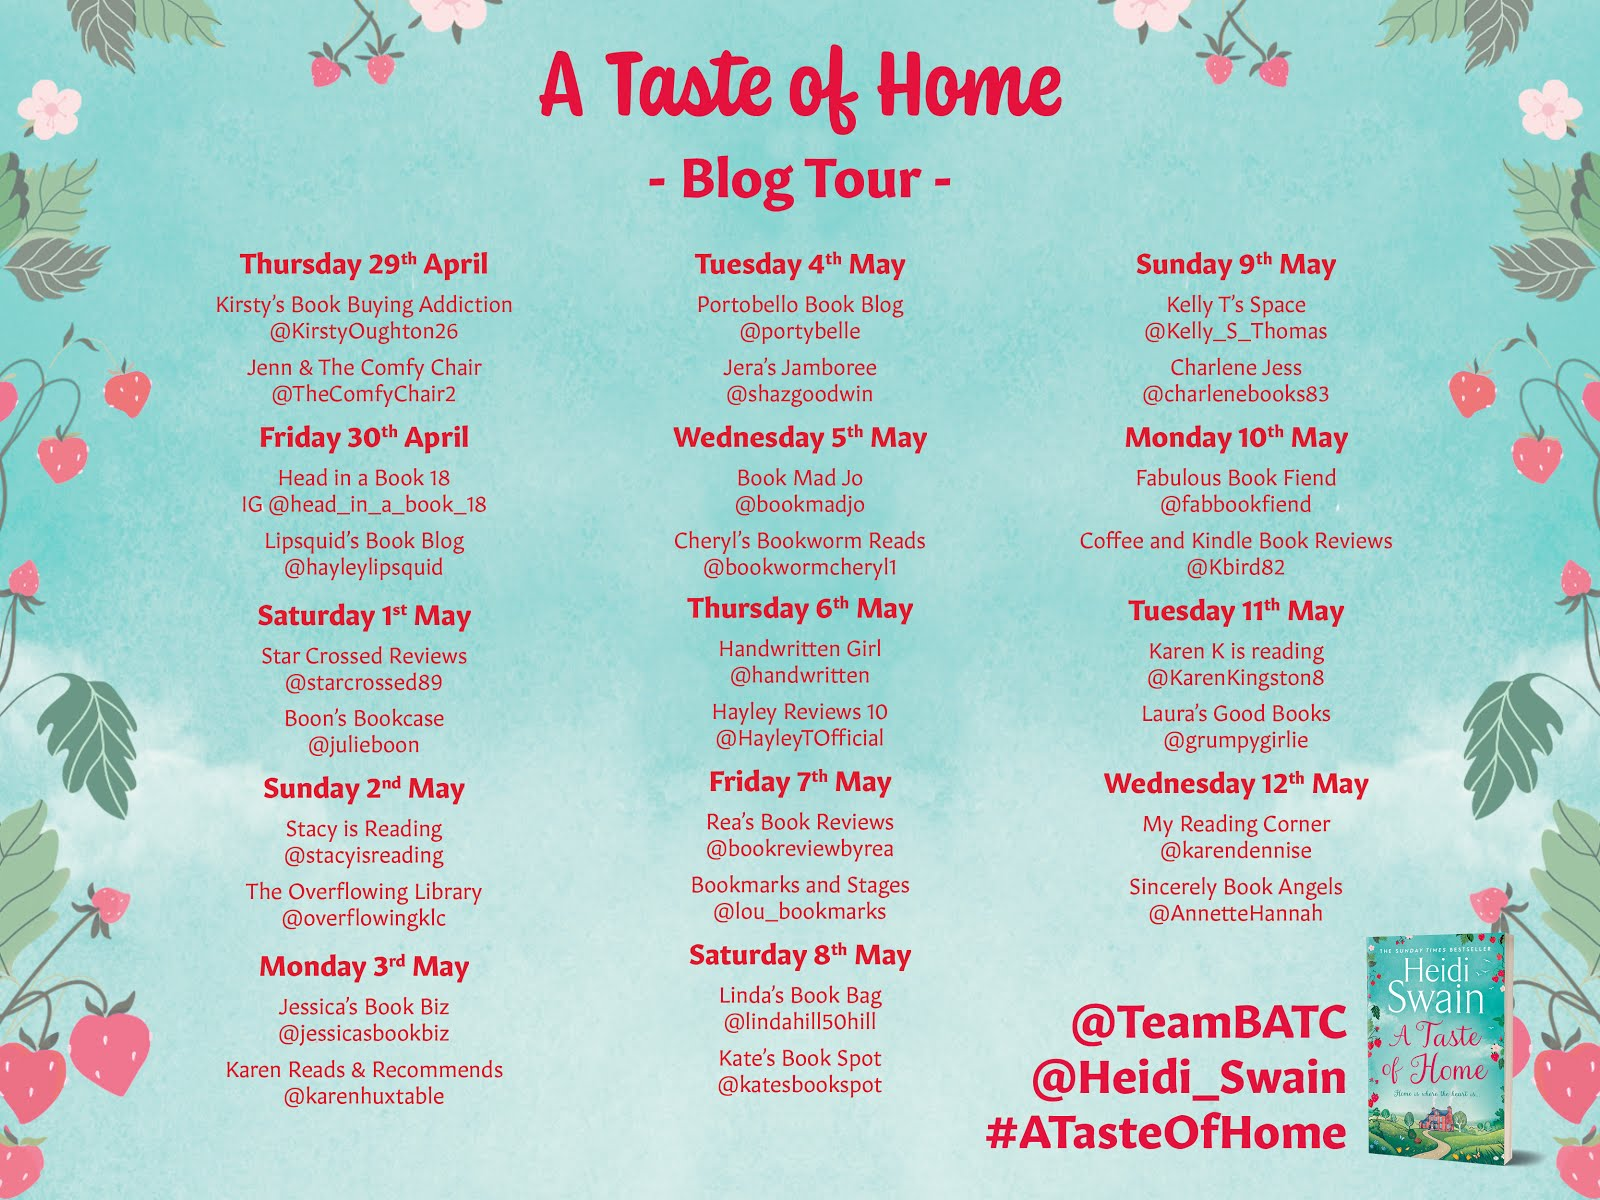 A Taste of Home Blog Tour